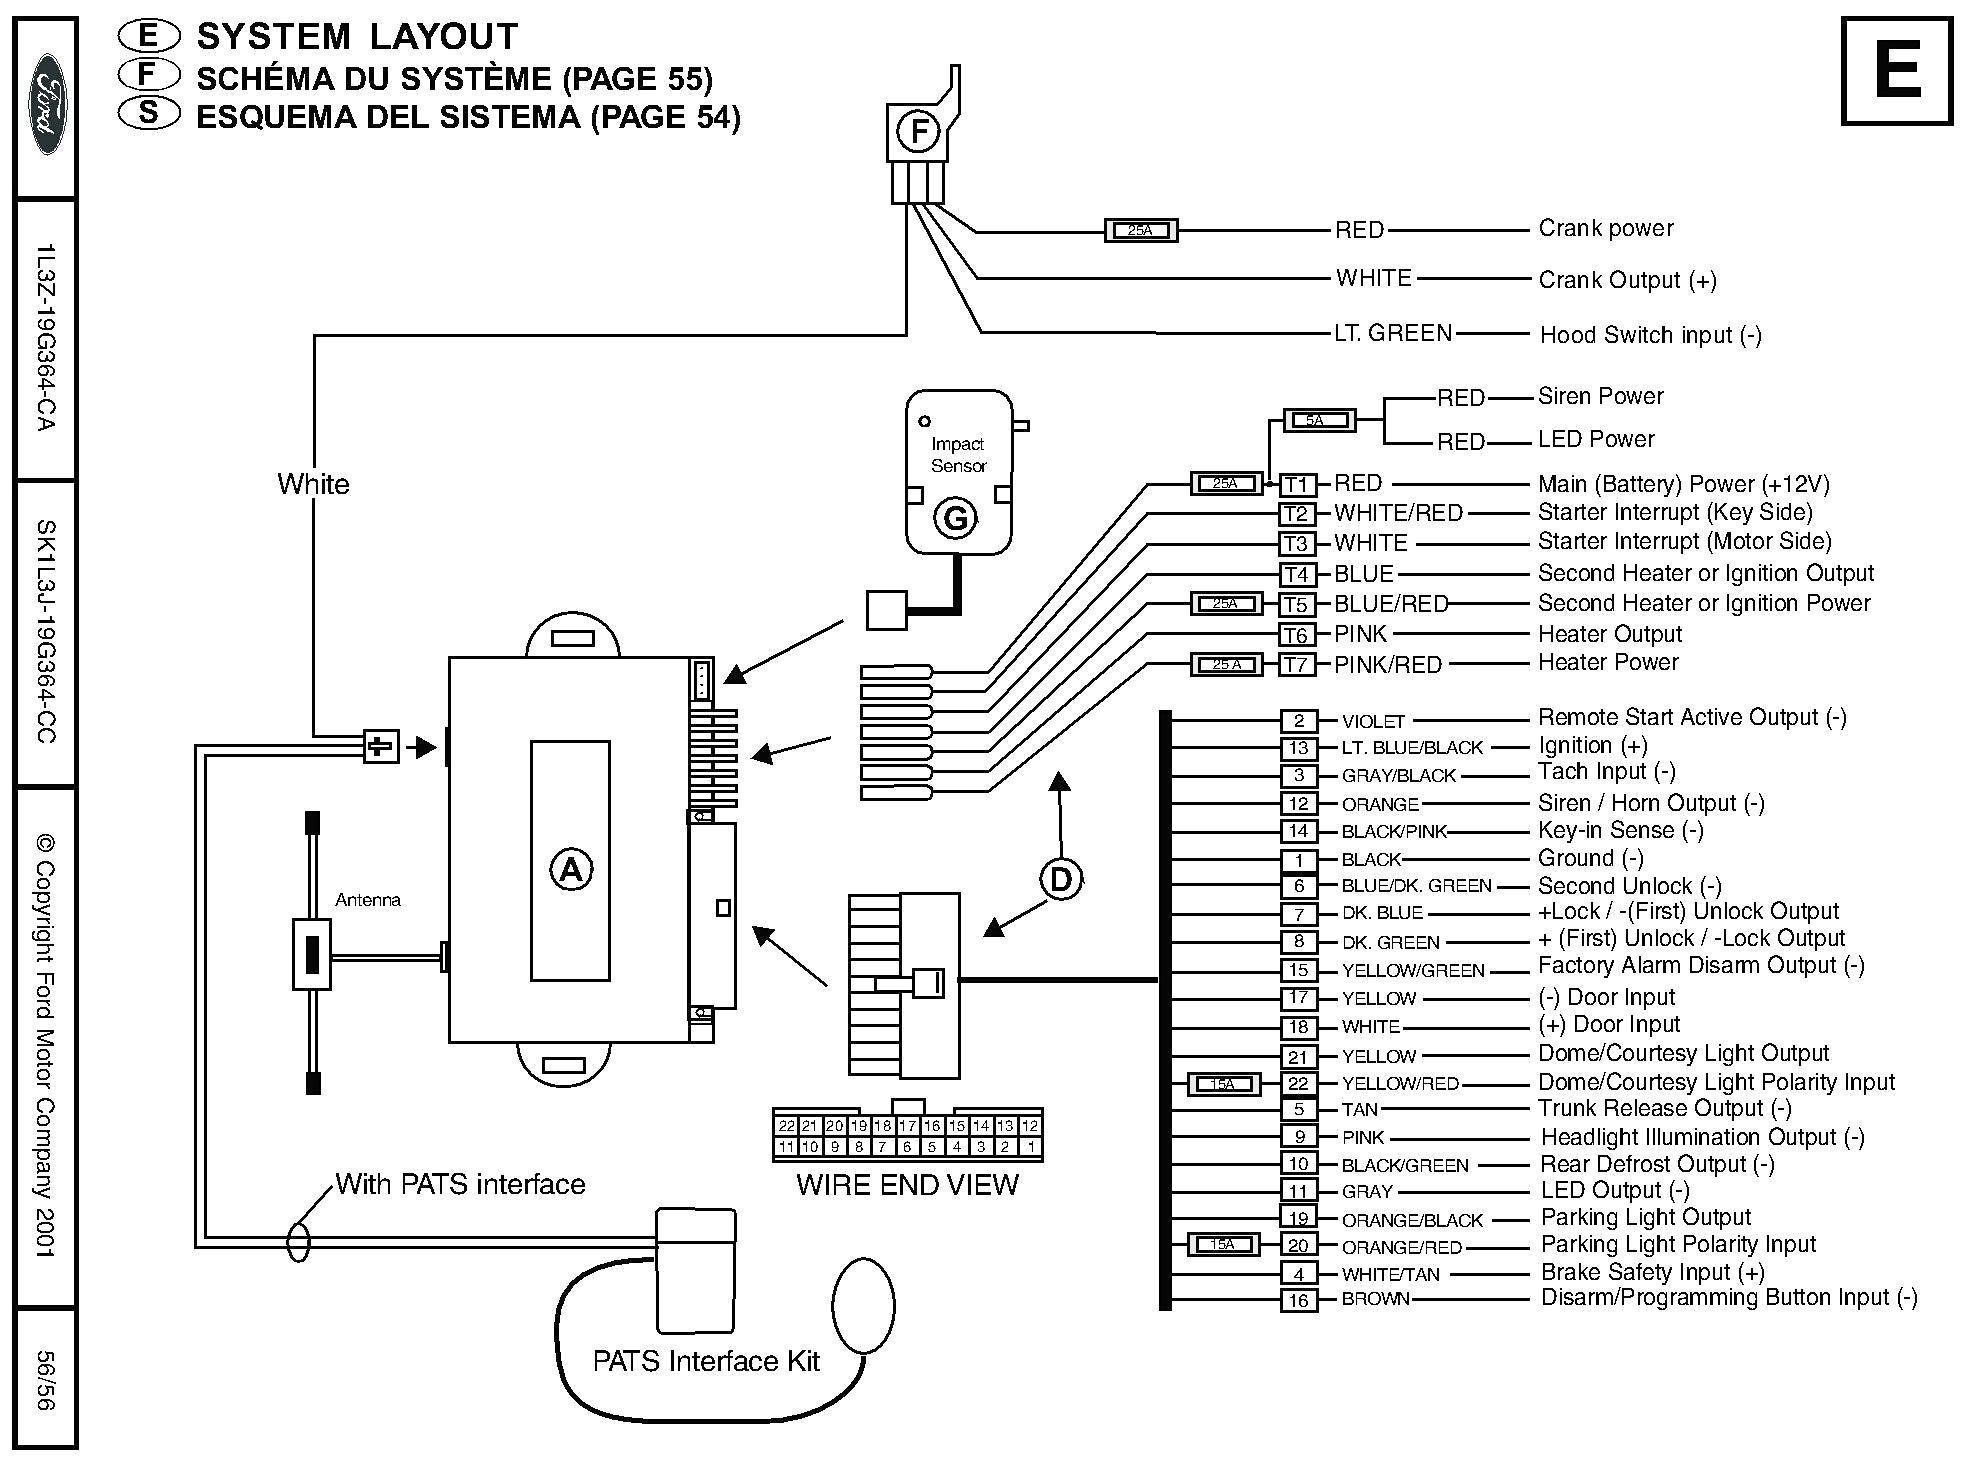 Bulldog Security Wiring Diagram Bulldog Security Vehicle Wiring Diagram Sample Of Bulldog Security Wiring Diagram